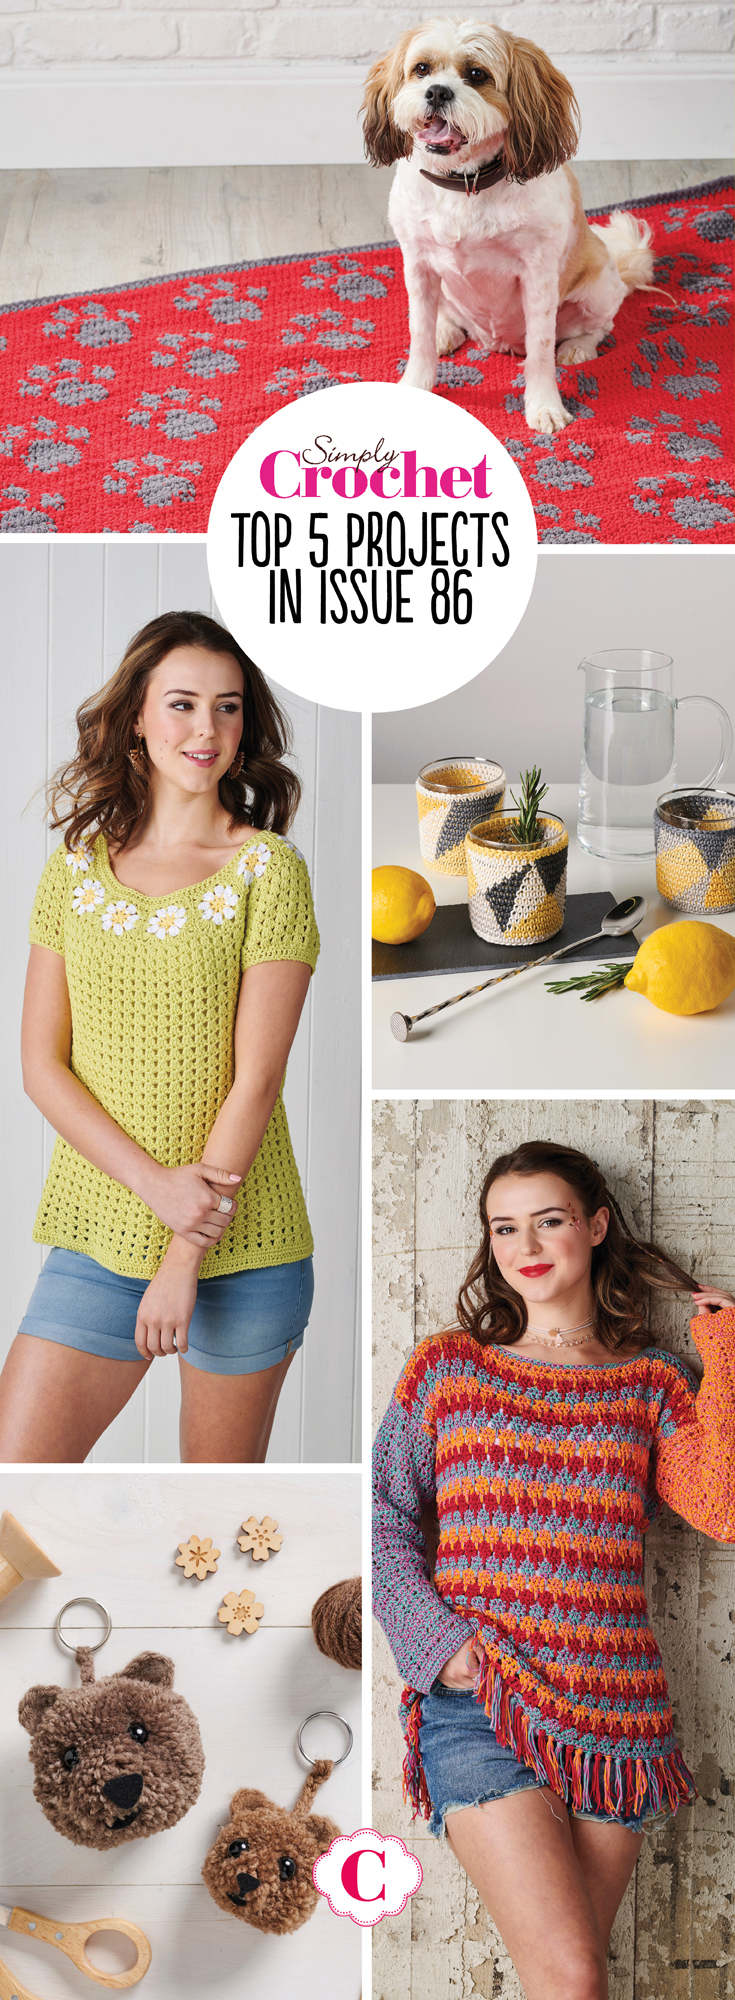 Are you a sun soaker or a shade seeker? Whatever your holiday preference, in Simply Crochet issue 86 we're uniting the two camps with our sun and shade collection, a set of cool geometric homewares picked out in warm tones. There's also plenty of summer projects for you to hook up too, from our beautiful cover star daisy top, to our fun and fabulous festival jumper! And if you're an animal lover, well you're in luck - there's the most amazing pet blanket (modelled by own lovely pooch Mabel), bear pompoms (yes you read that correctly - you will be amazed), and if it's fantasy animals you'er after, then you'll love this issues hook to hook challenge!